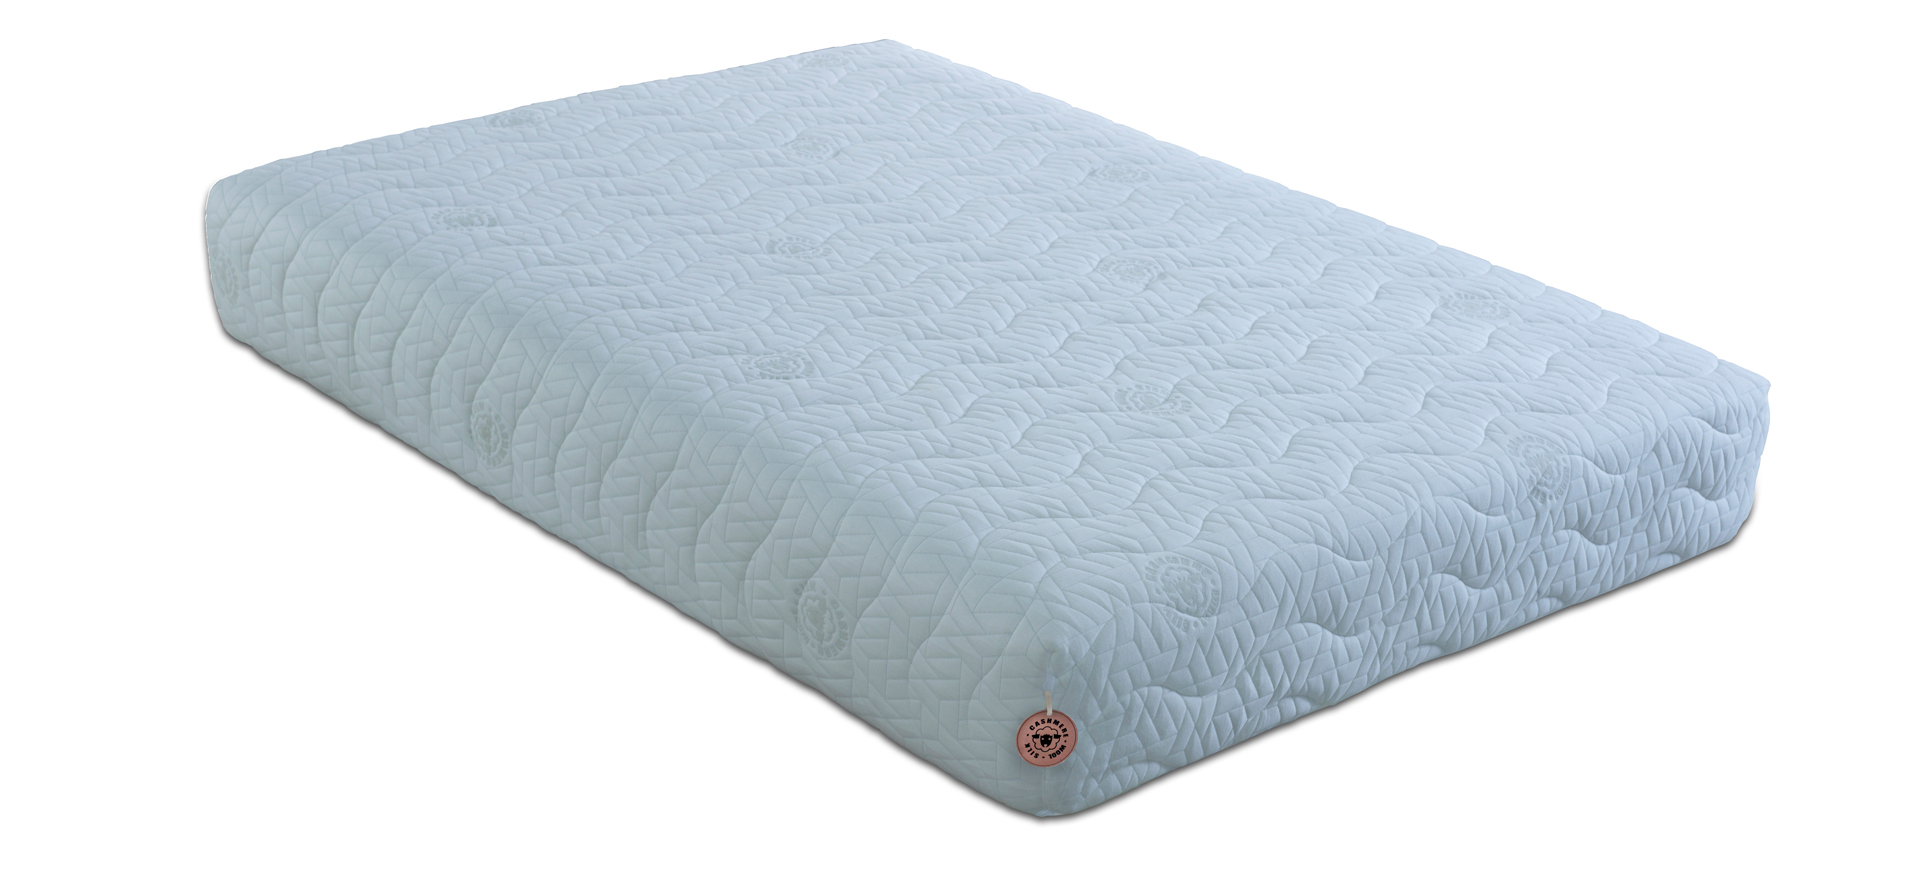 Uno tranquil 2000 pocket sprung 4ft6 double mattress